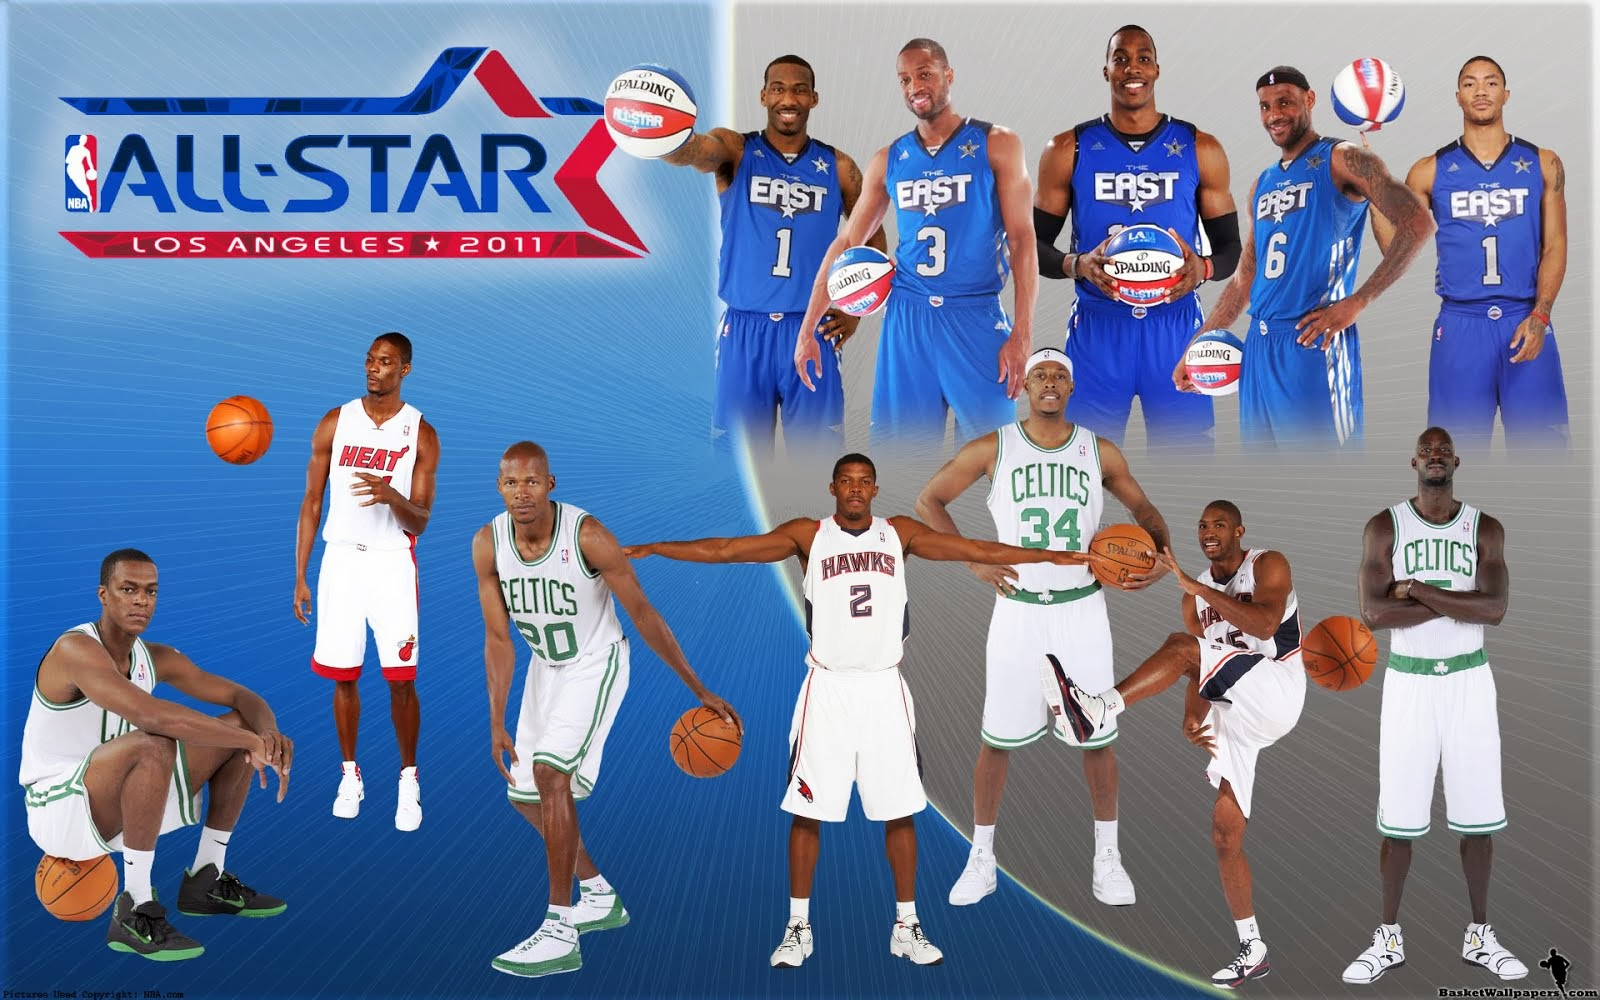 Nba All Star Basketball Wallpapers